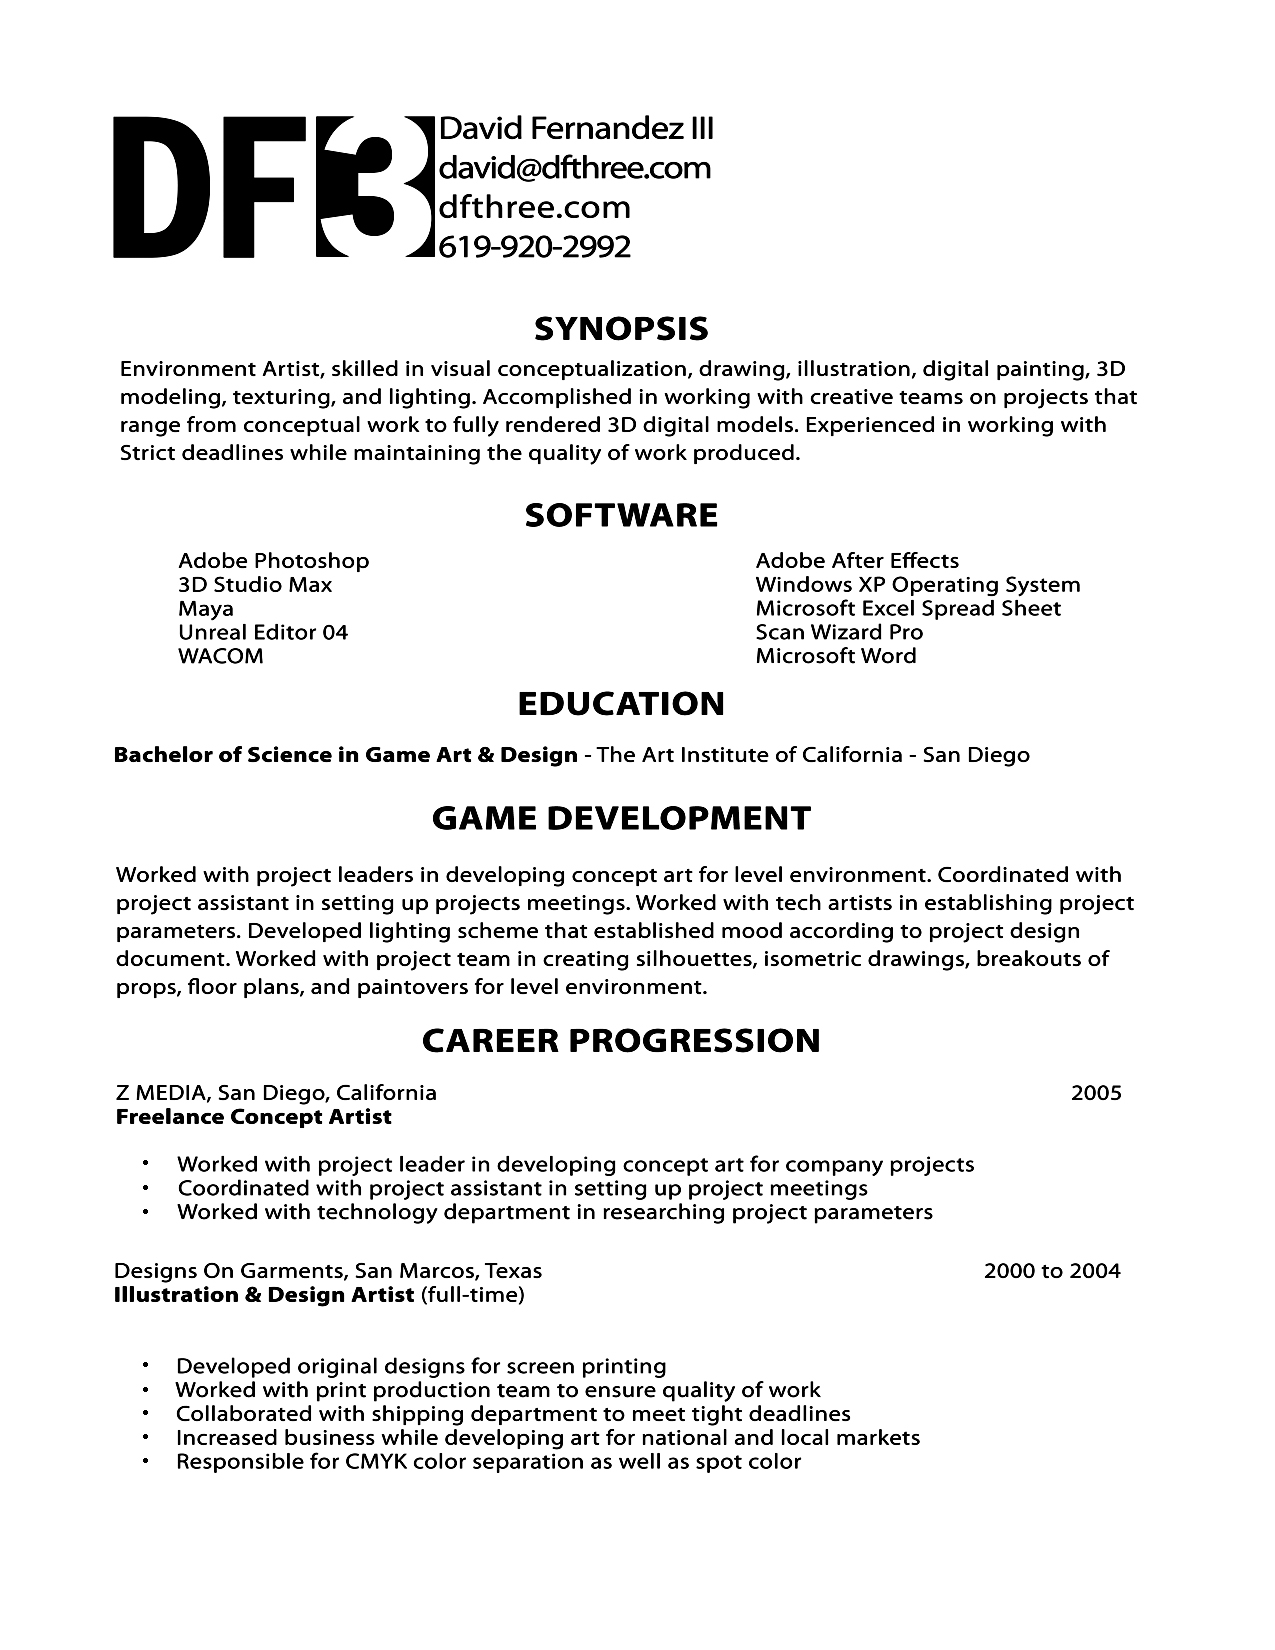 Opposenewapstandardsus  Wonderful Game Developer Resume Game Tester Resume Sample Game Tester  With Engaging Better Jobs Faster With Enchanting Resume References Upon Request Also Example It Resume In Addition Resume Simple And How To Type A Resume On Word As Well As Sports Management Resume Additionally Cv To Resume From Kelseymarieco With Opposenewapstandardsus  Engaging Game Developer Resume Game Tester Resume Sample Game Tester  With Enchanting Better Jobs Faster And Wonderful Resume References Upon Request Also Example It Resume In Addition Resume Simple From Kelseymarieco